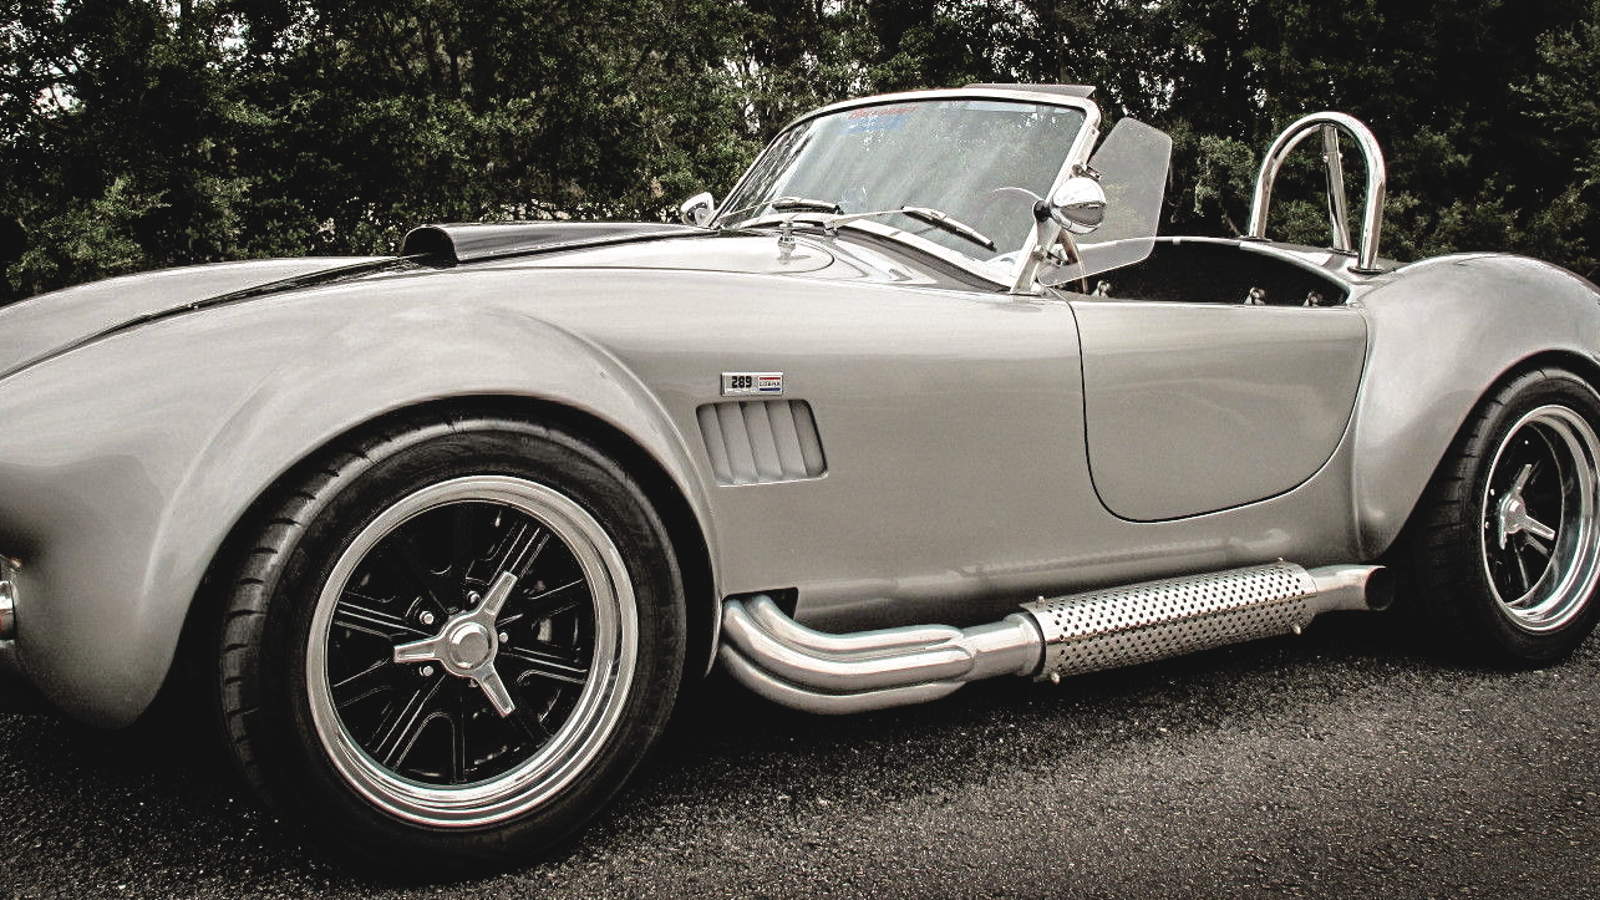 You can buy this insane shelby cobra for the price of a hateful minivan